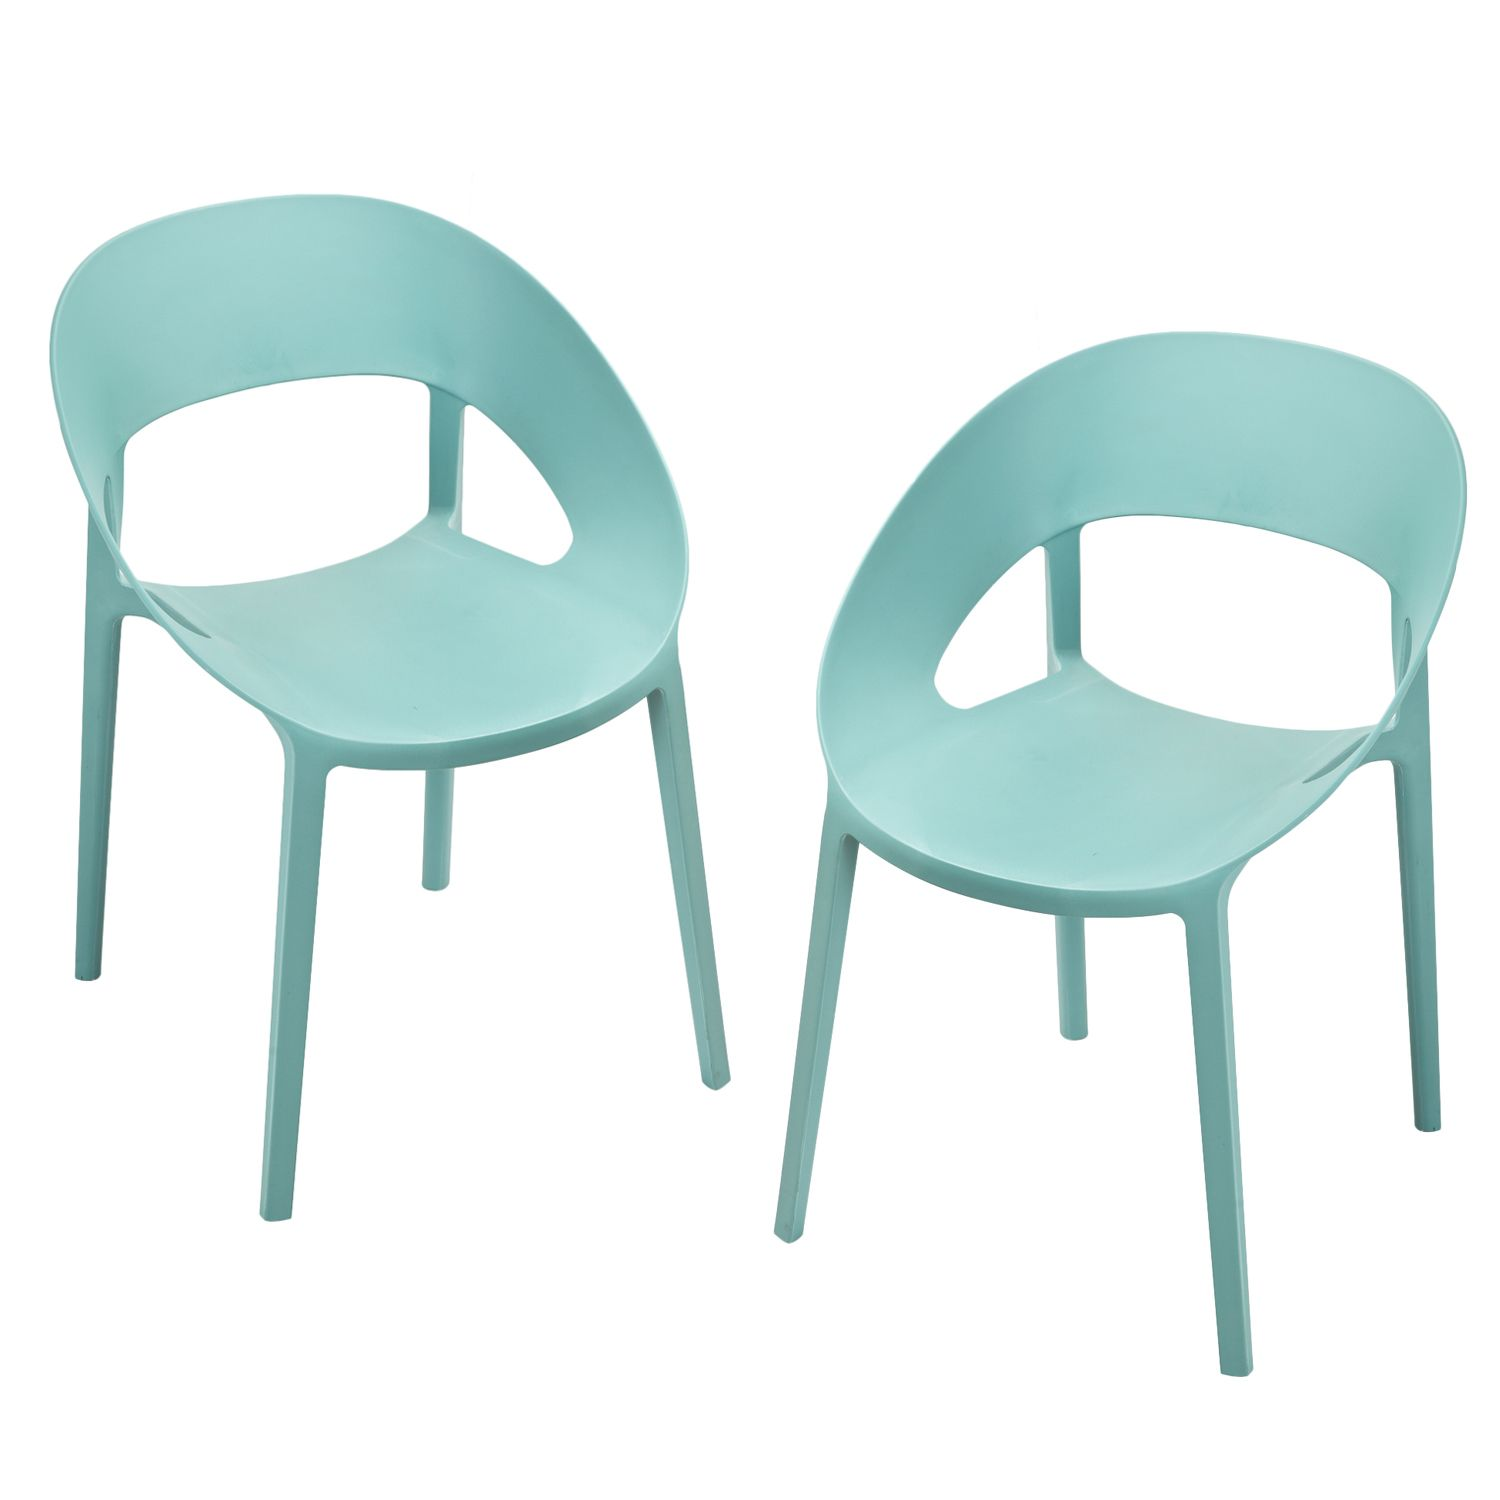 Modern Plastic Chairs - Joveco 2 plastic chair modern design surfin